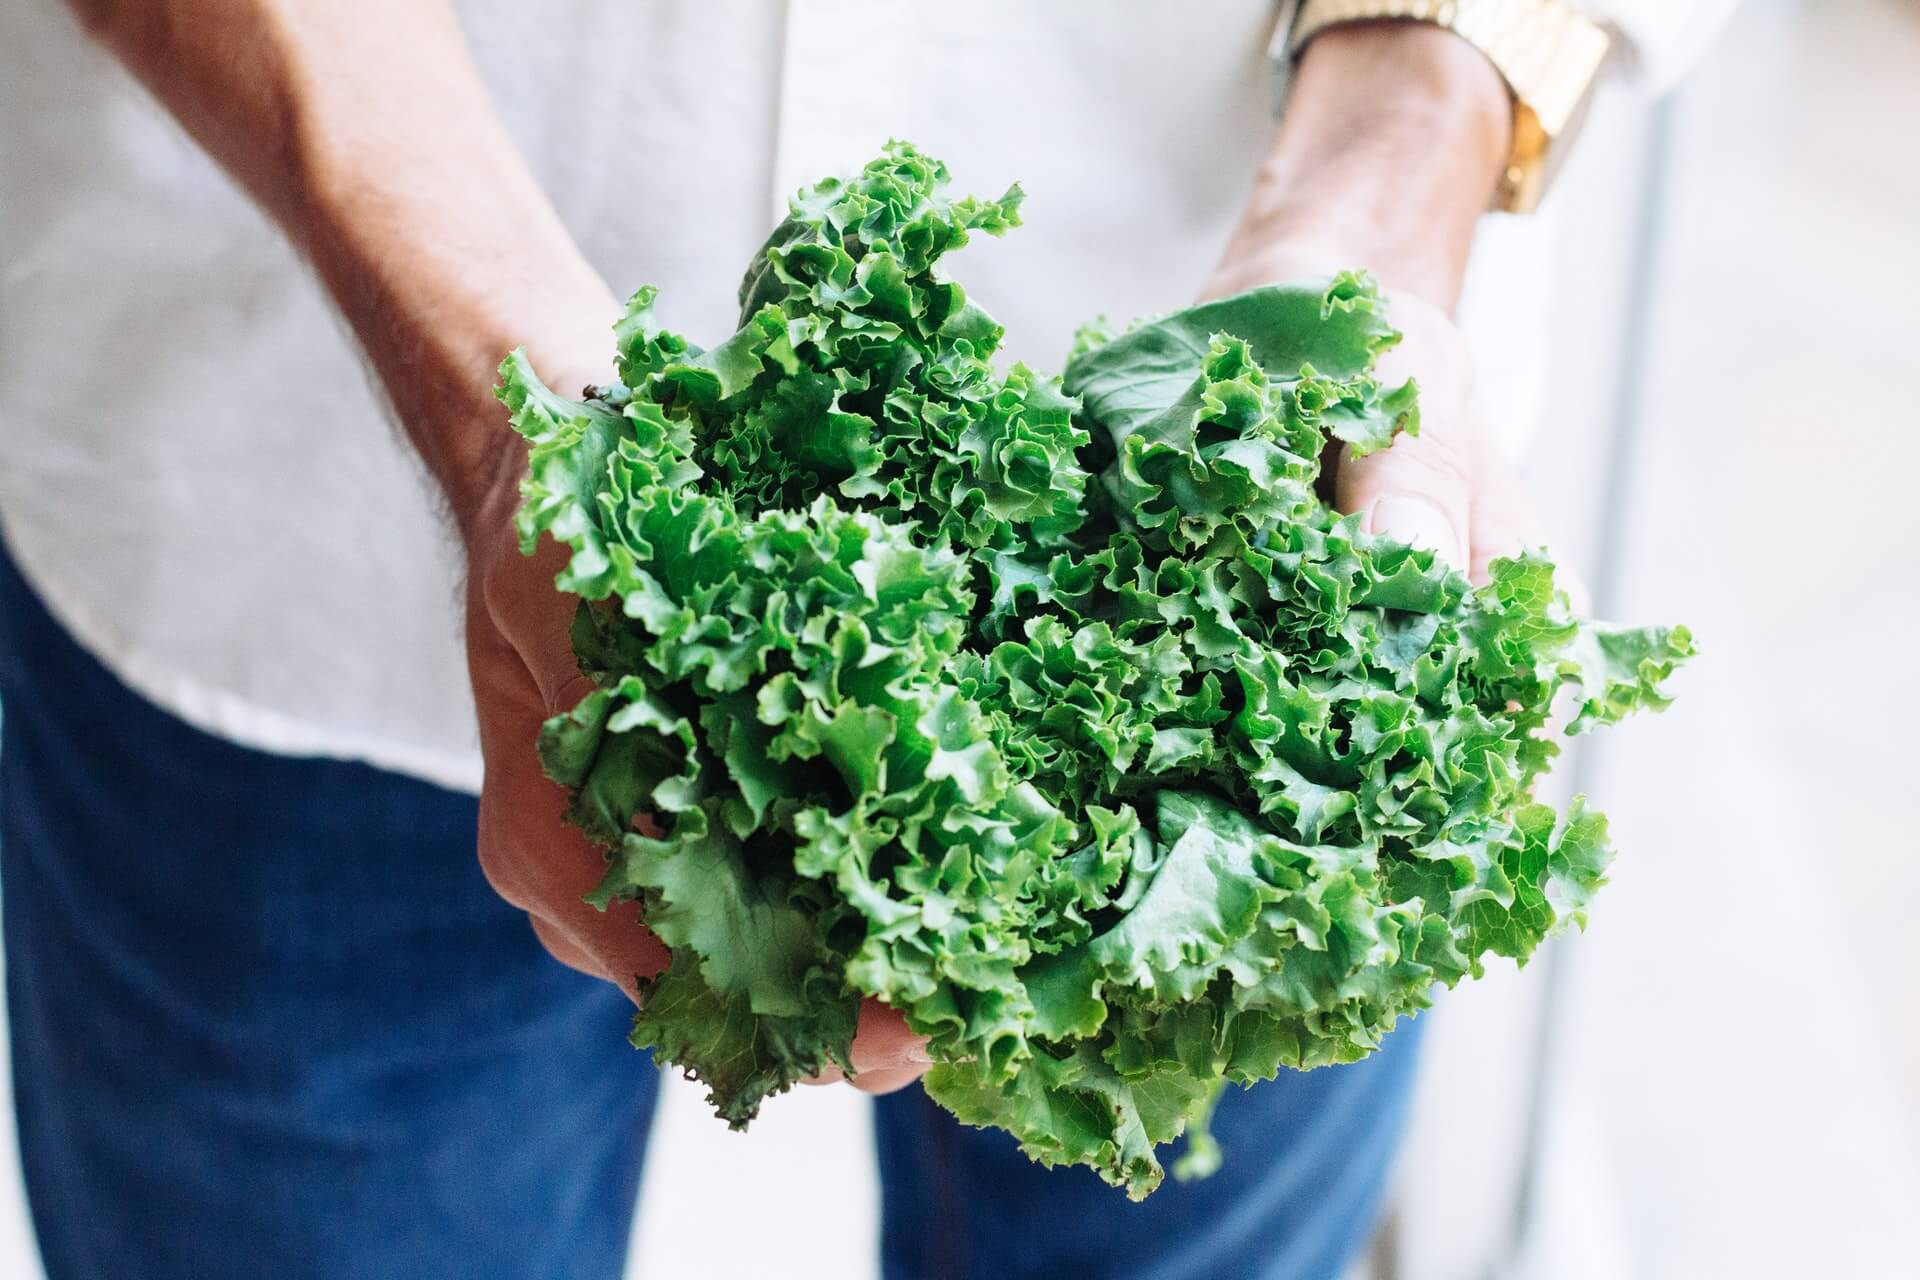 person wearing white top blue jeans holding leafy greens